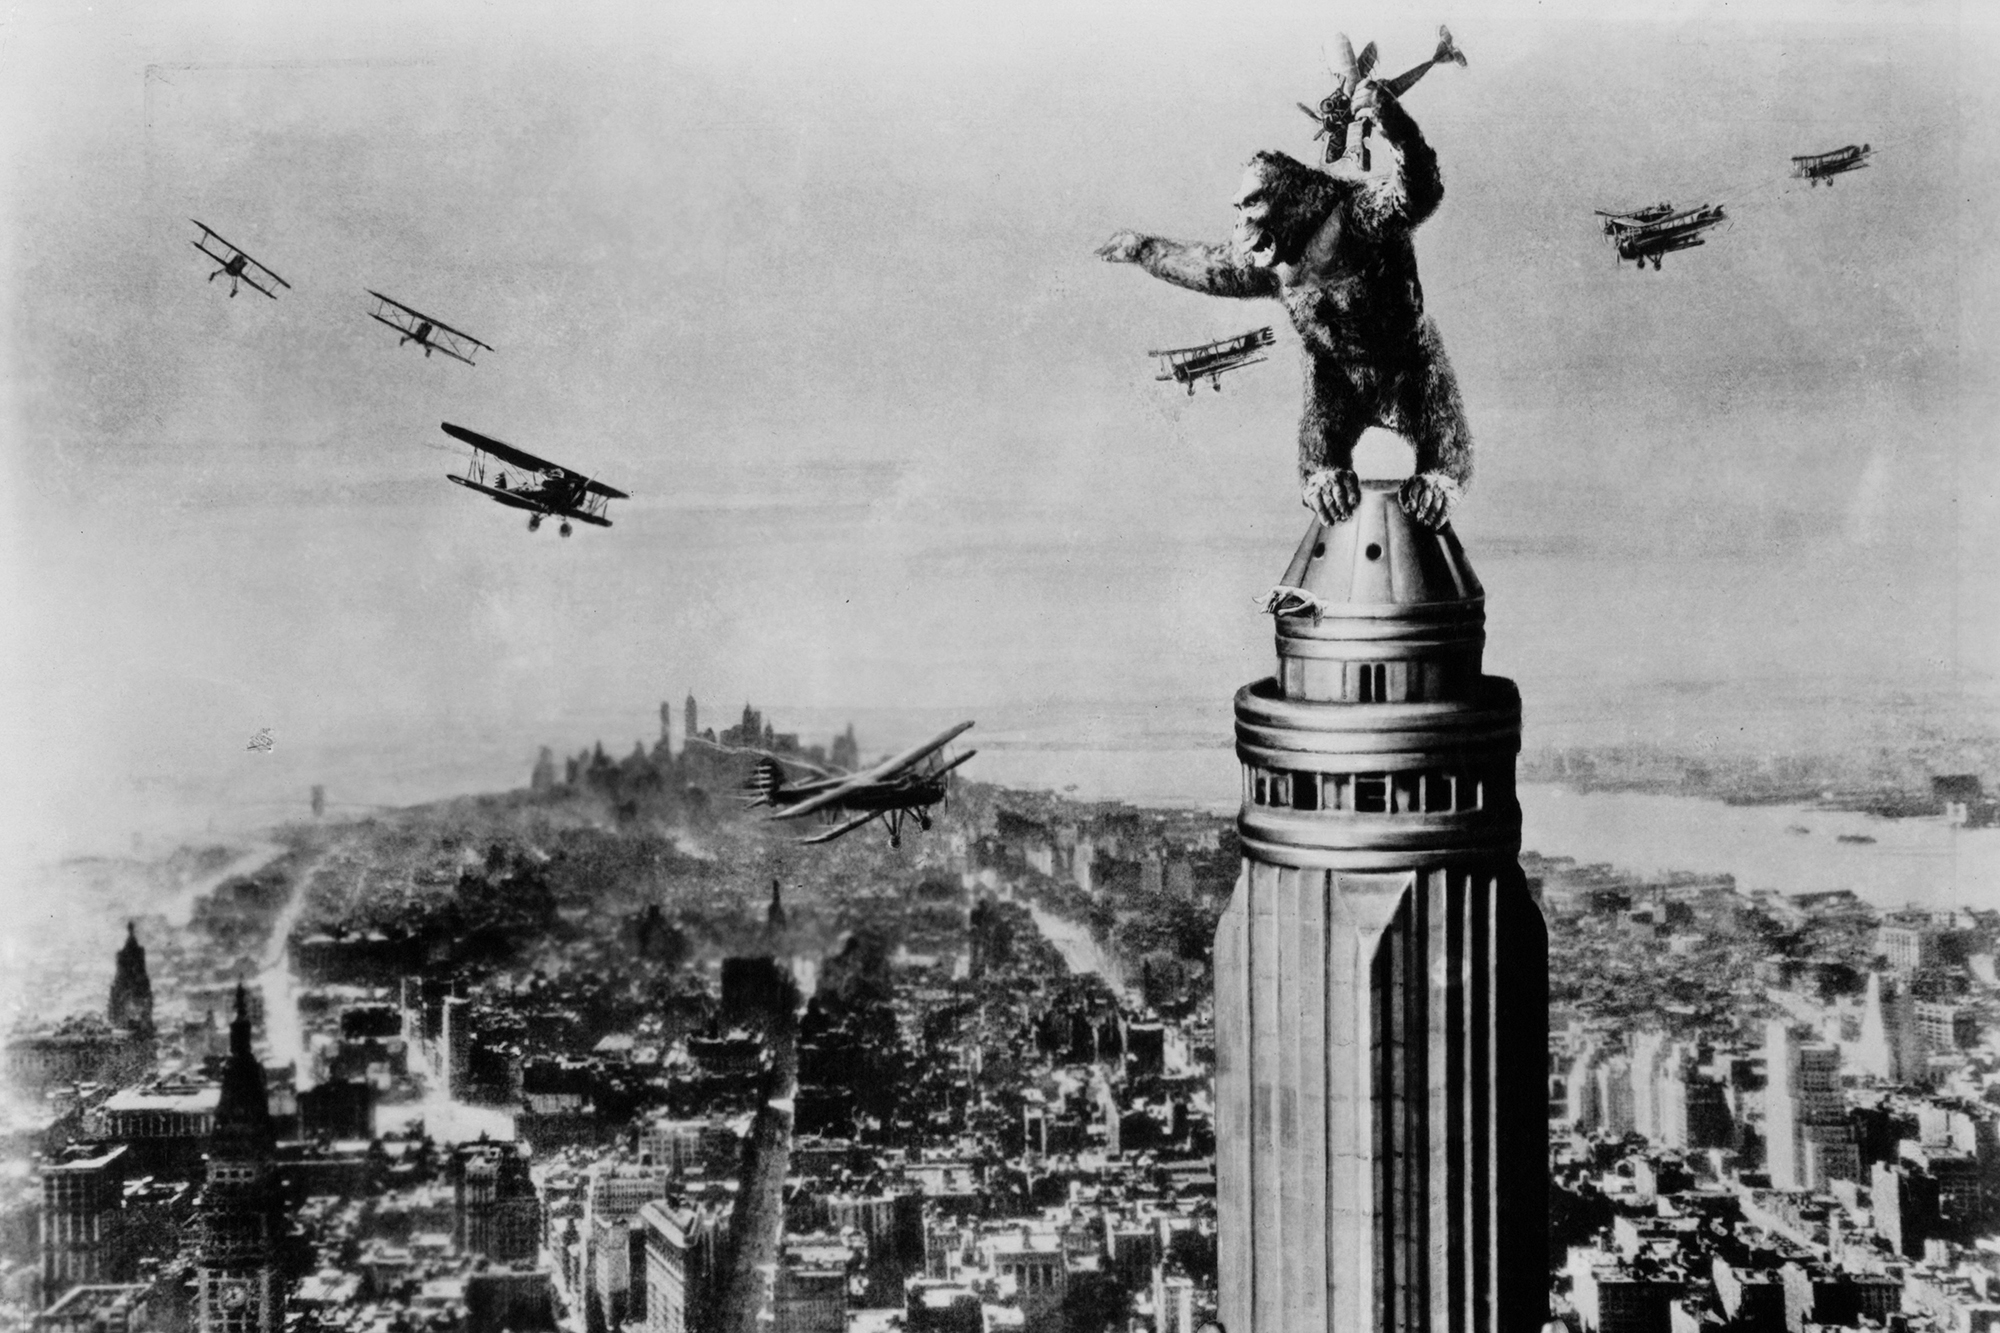 King Kong, 1933: The first Kong was a feat of stop-motion animation. Footage of puppets—no bigger than 2 ft. tall and constructed from ball-and-socket joints and rabbit fur—was combined with live-action shots using techniques like double exposure and matte painting, with one minute of film taking as long as 150 hours to produce.